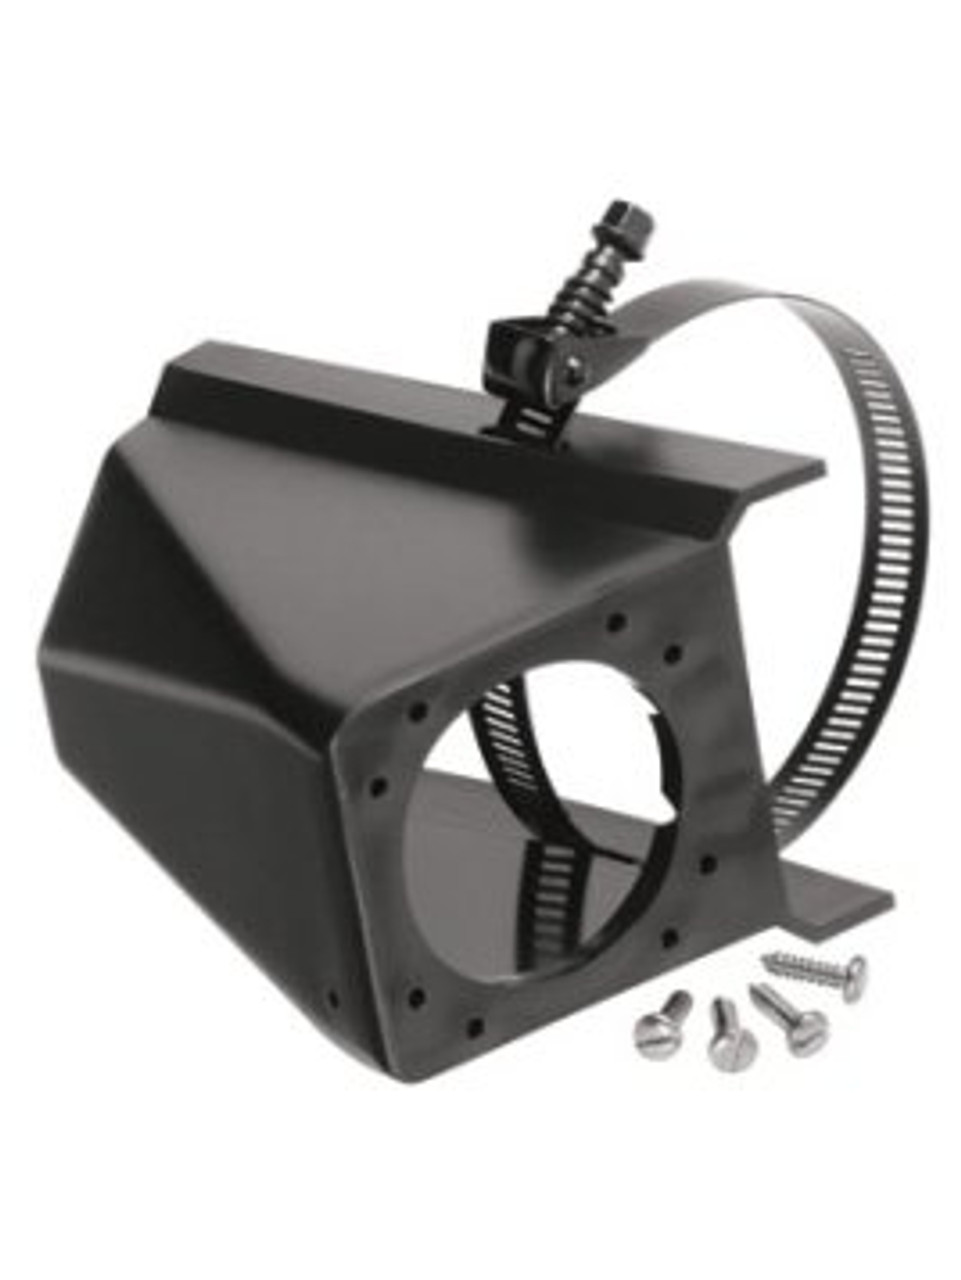 118159 --- Mounting Box for 6-Way and 7-Way Connectors